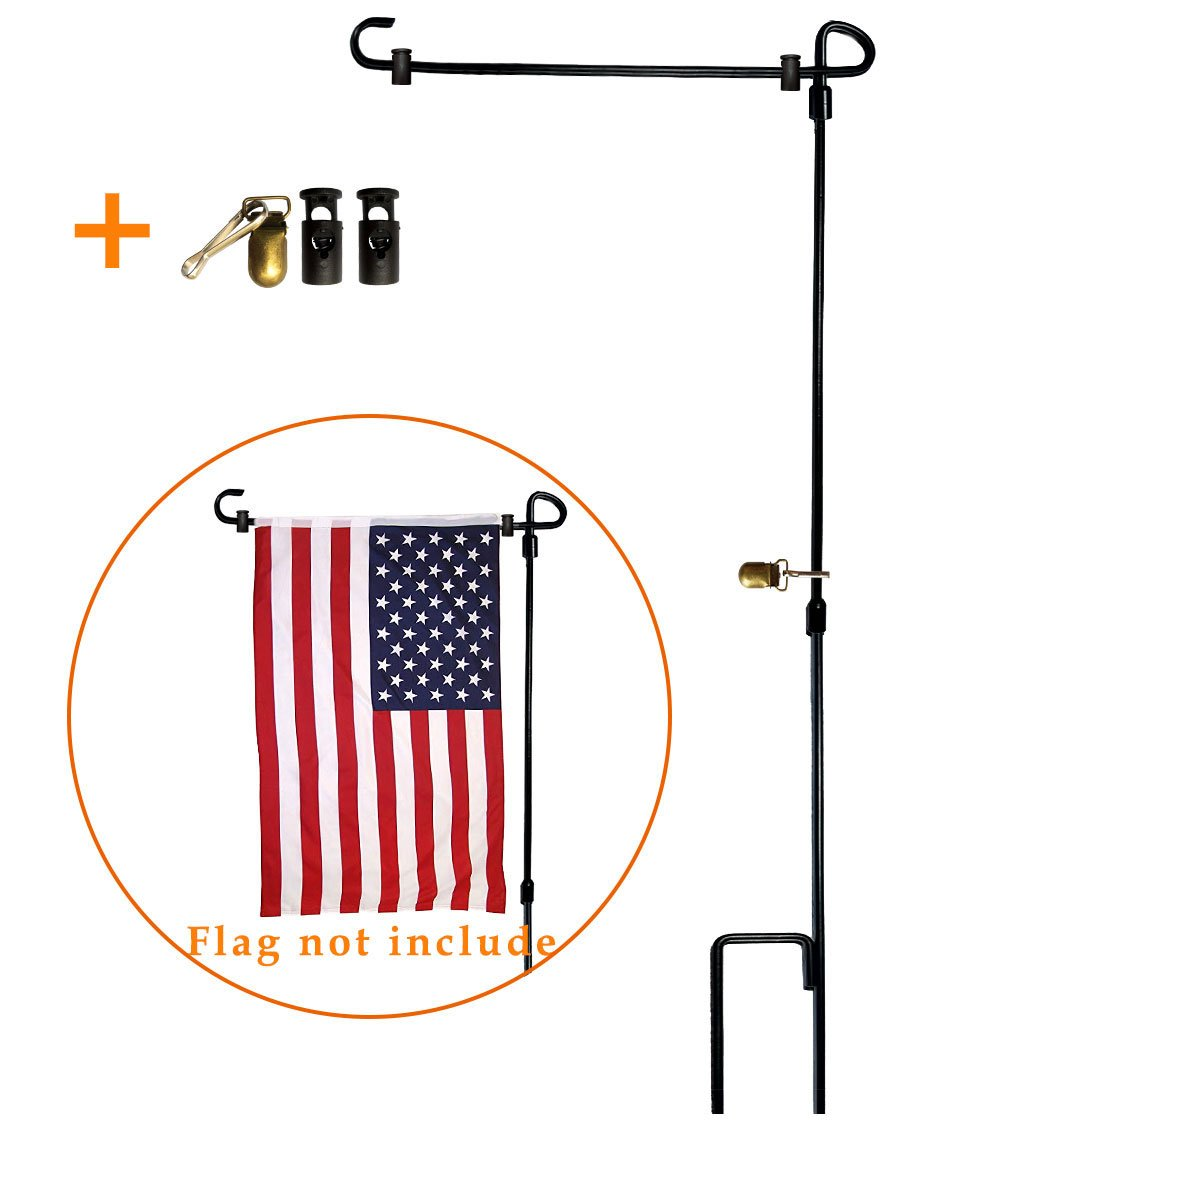 VIEKEY Garden Flag Stand-holder-Pole Come With Garden Flag Stopper And Anti-Wind Clip 36.3'' H x 16.5'' W (5 Pcs) For USA Flag Or Season Garden Flags Keep Your Flag Never Get Twisted Again